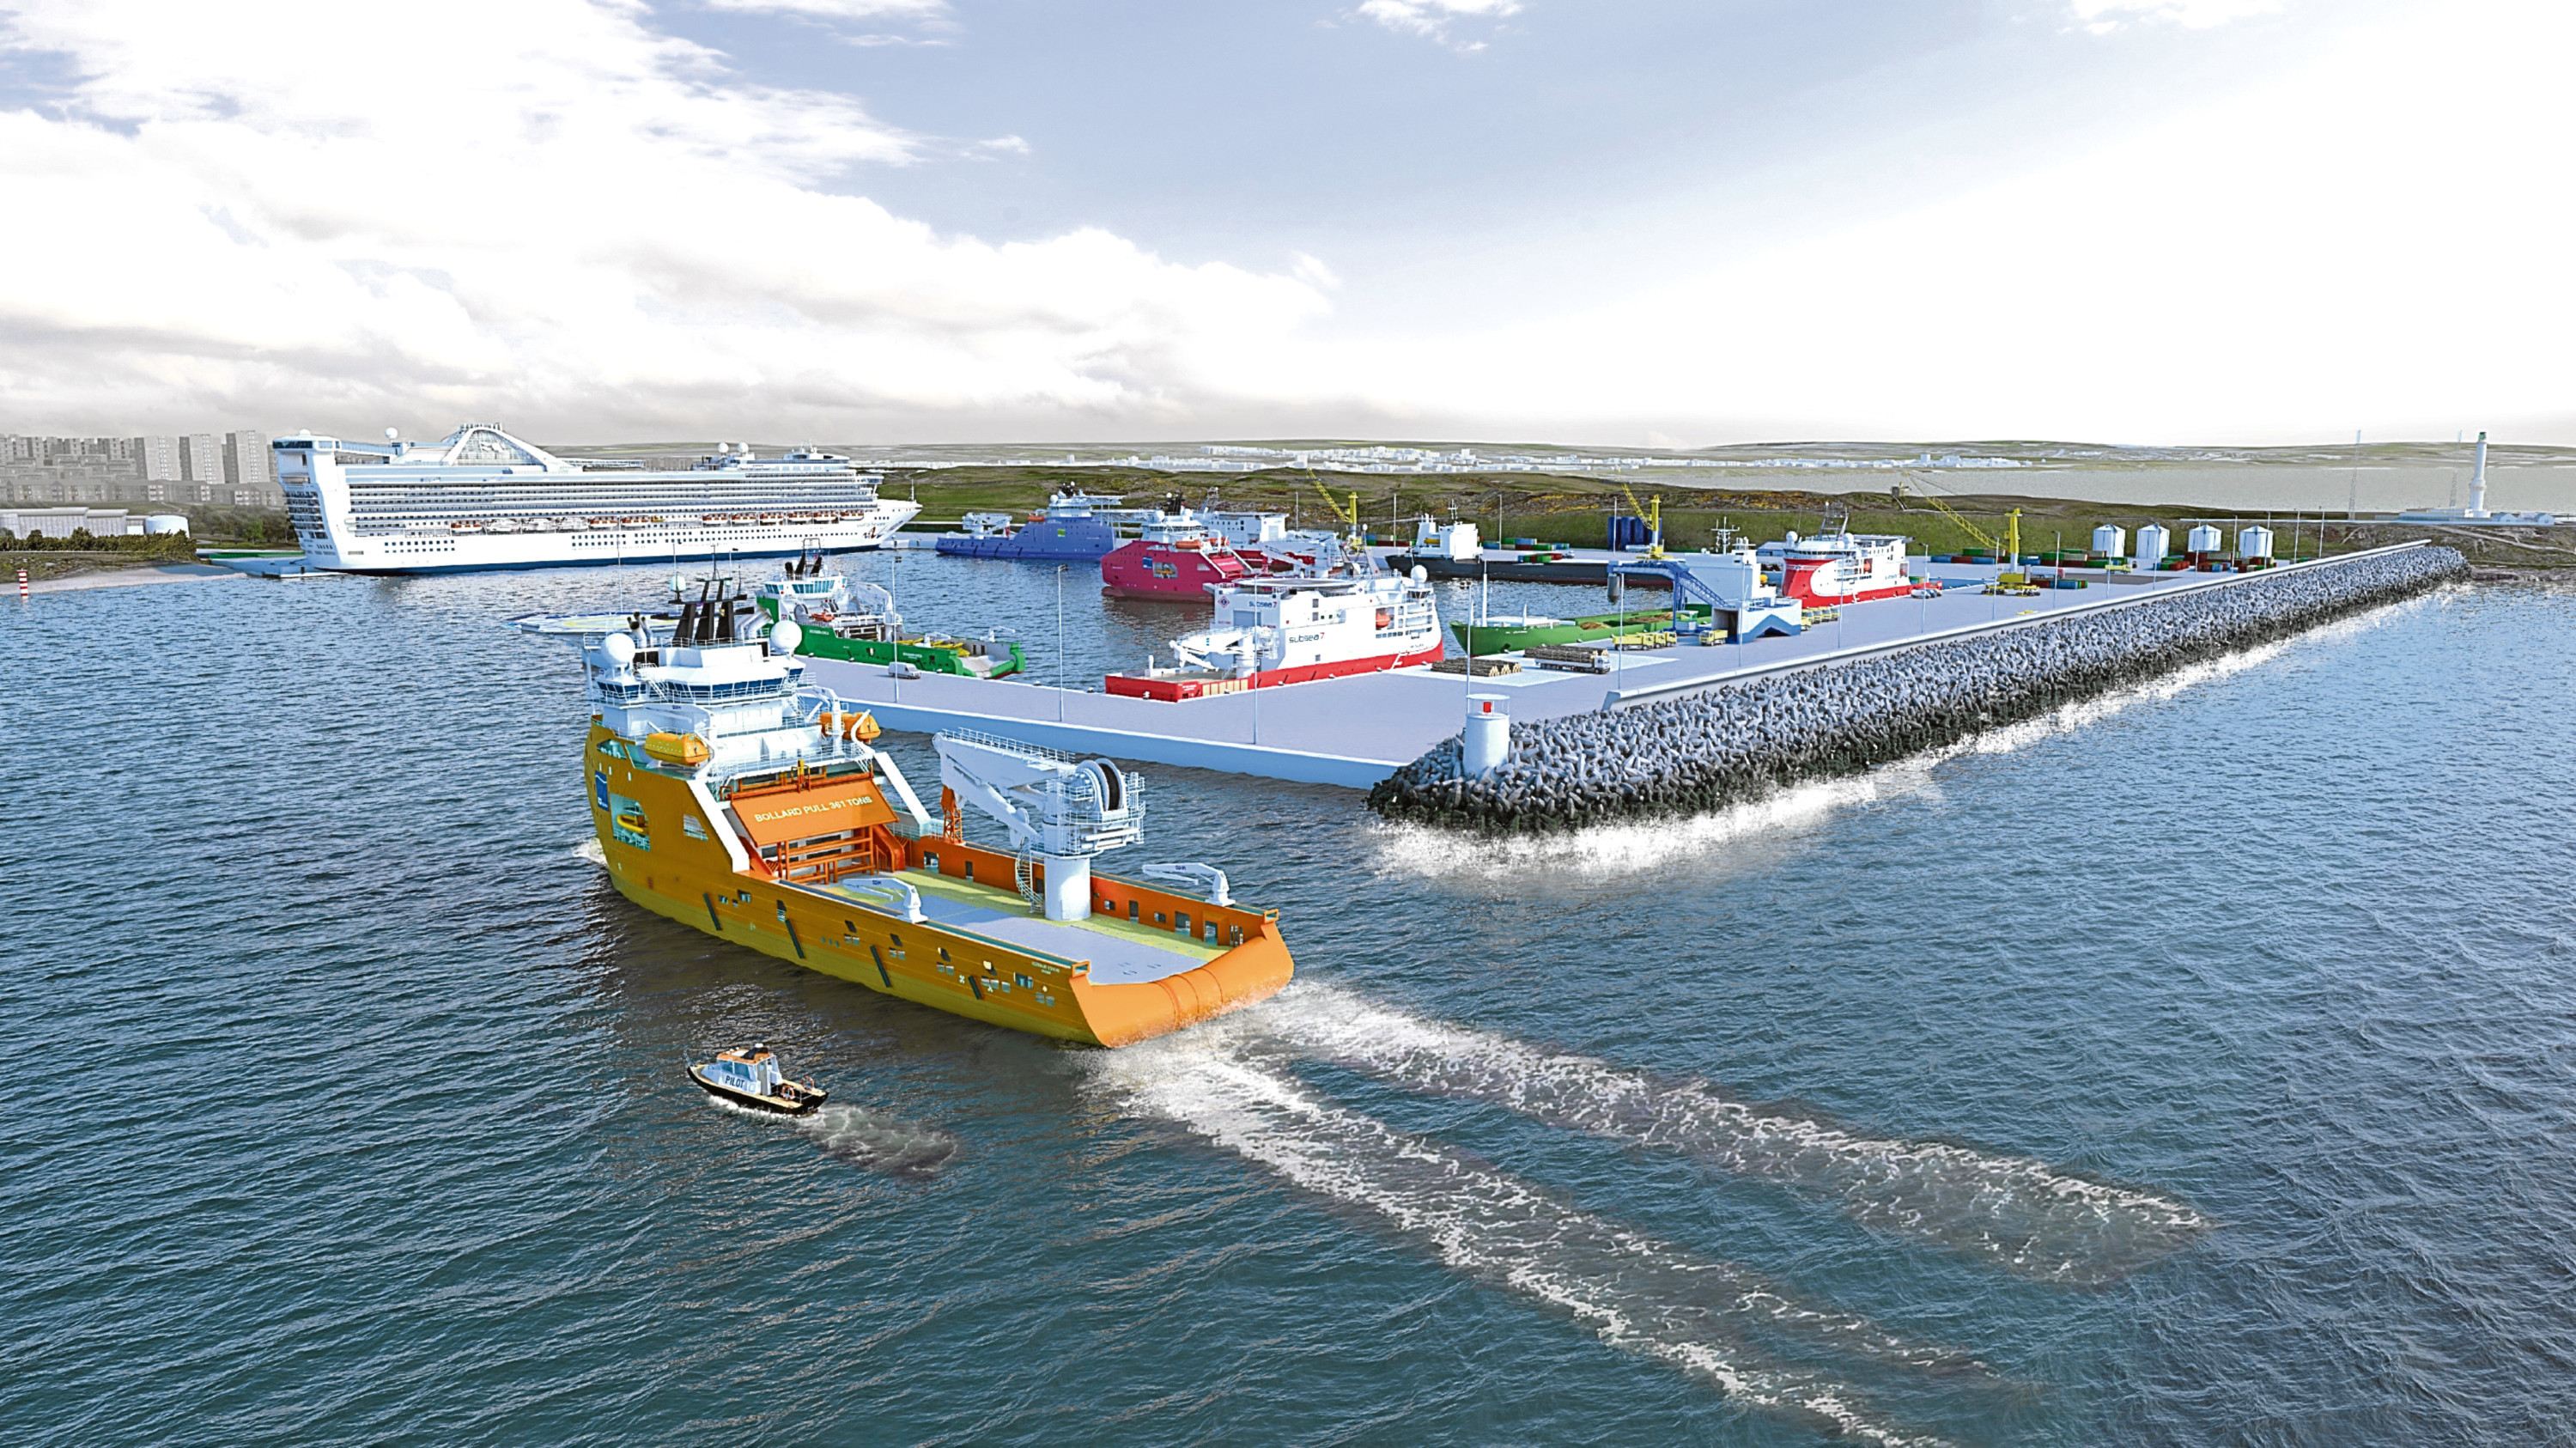 Artist's impressions of how the £350m Nigg Bay extension of Aberdeen Harbour could look when it is completed in 2020.